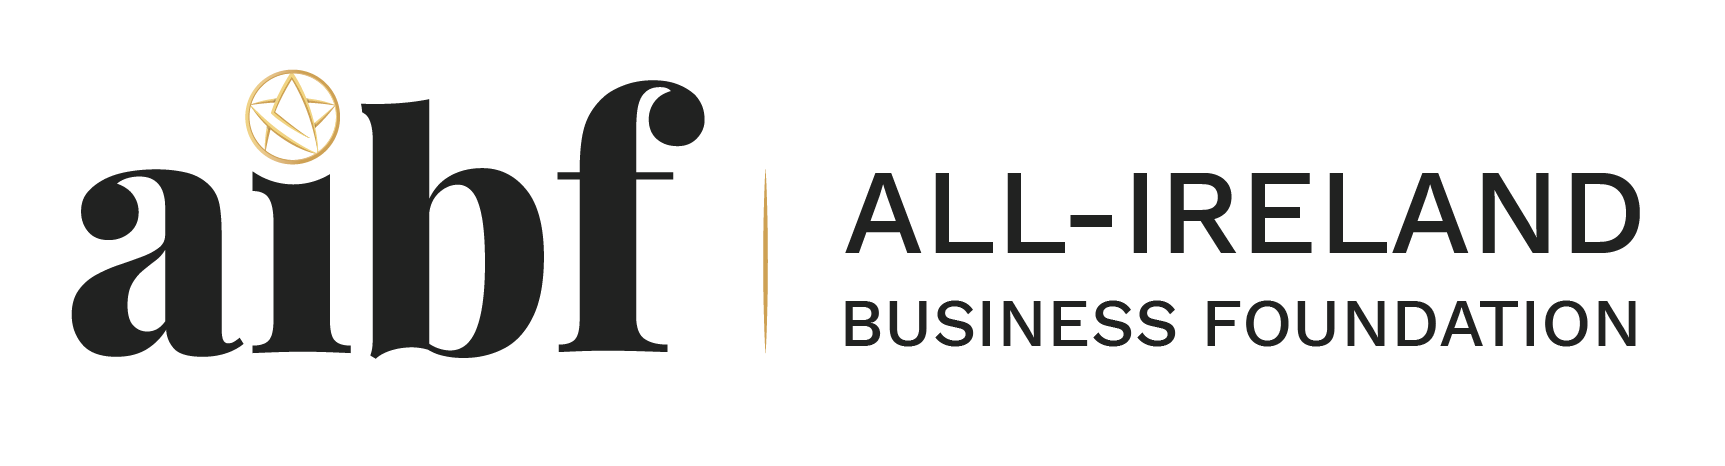 All-Ireland Business Foundation